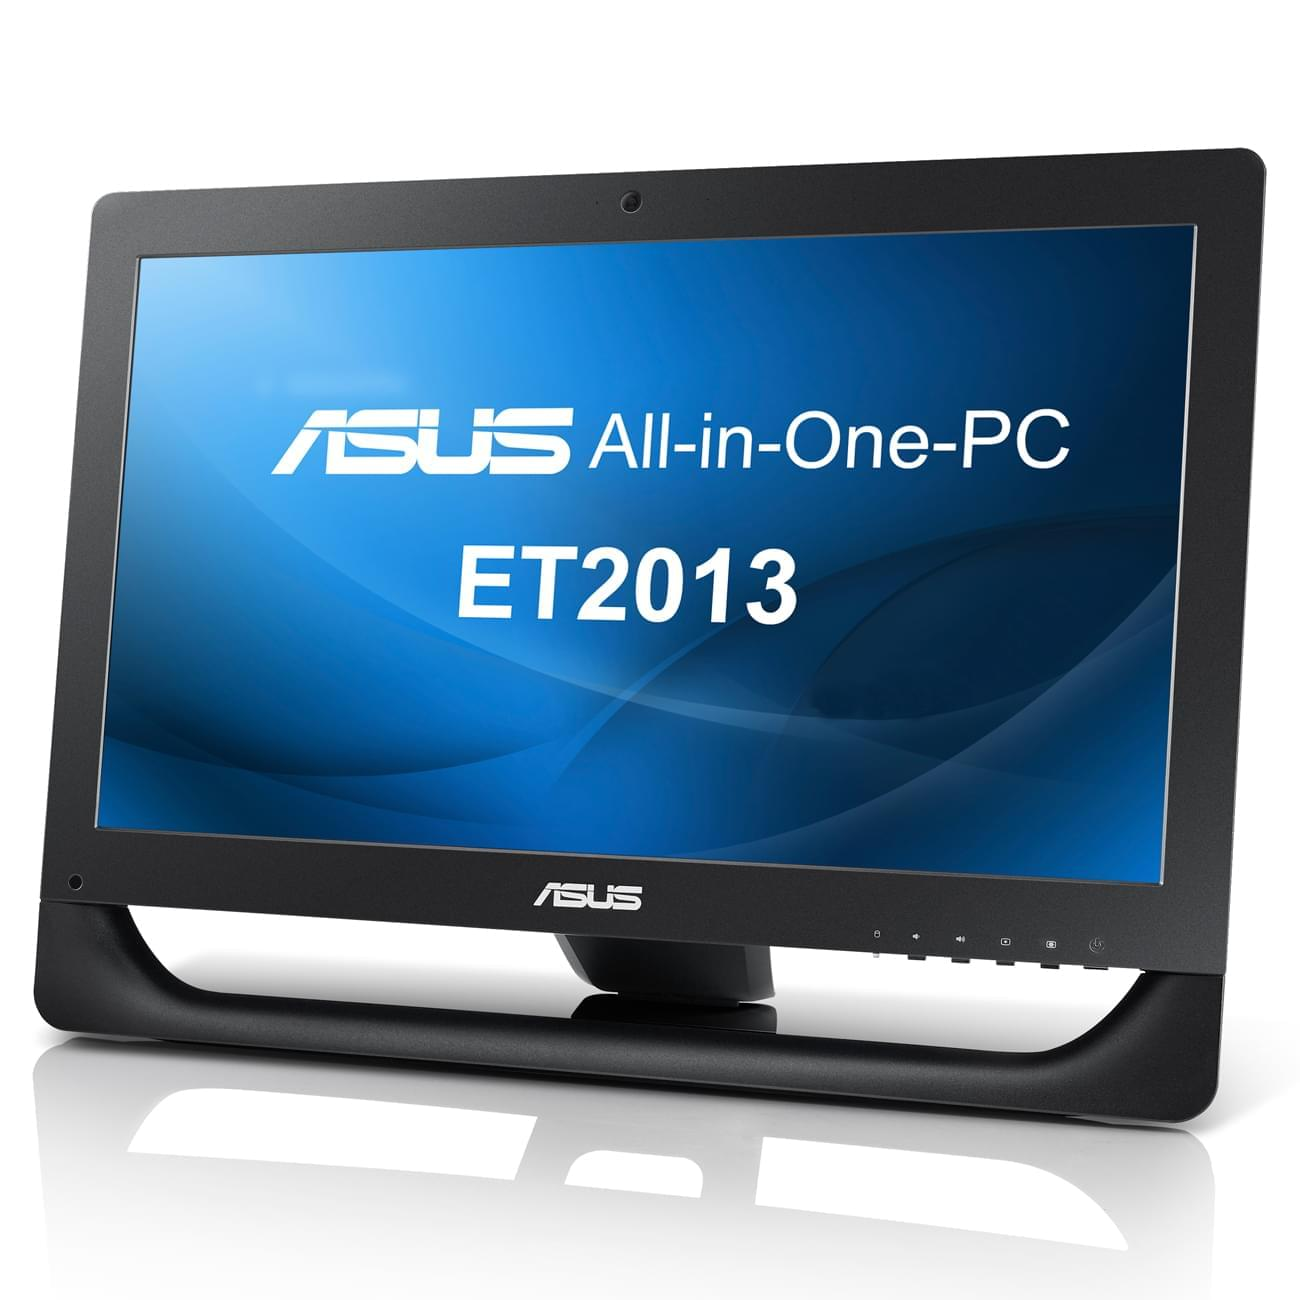 Asus ET2013IGKI-B006K - All-In-One PC Asus - Cybertek.fr - 0